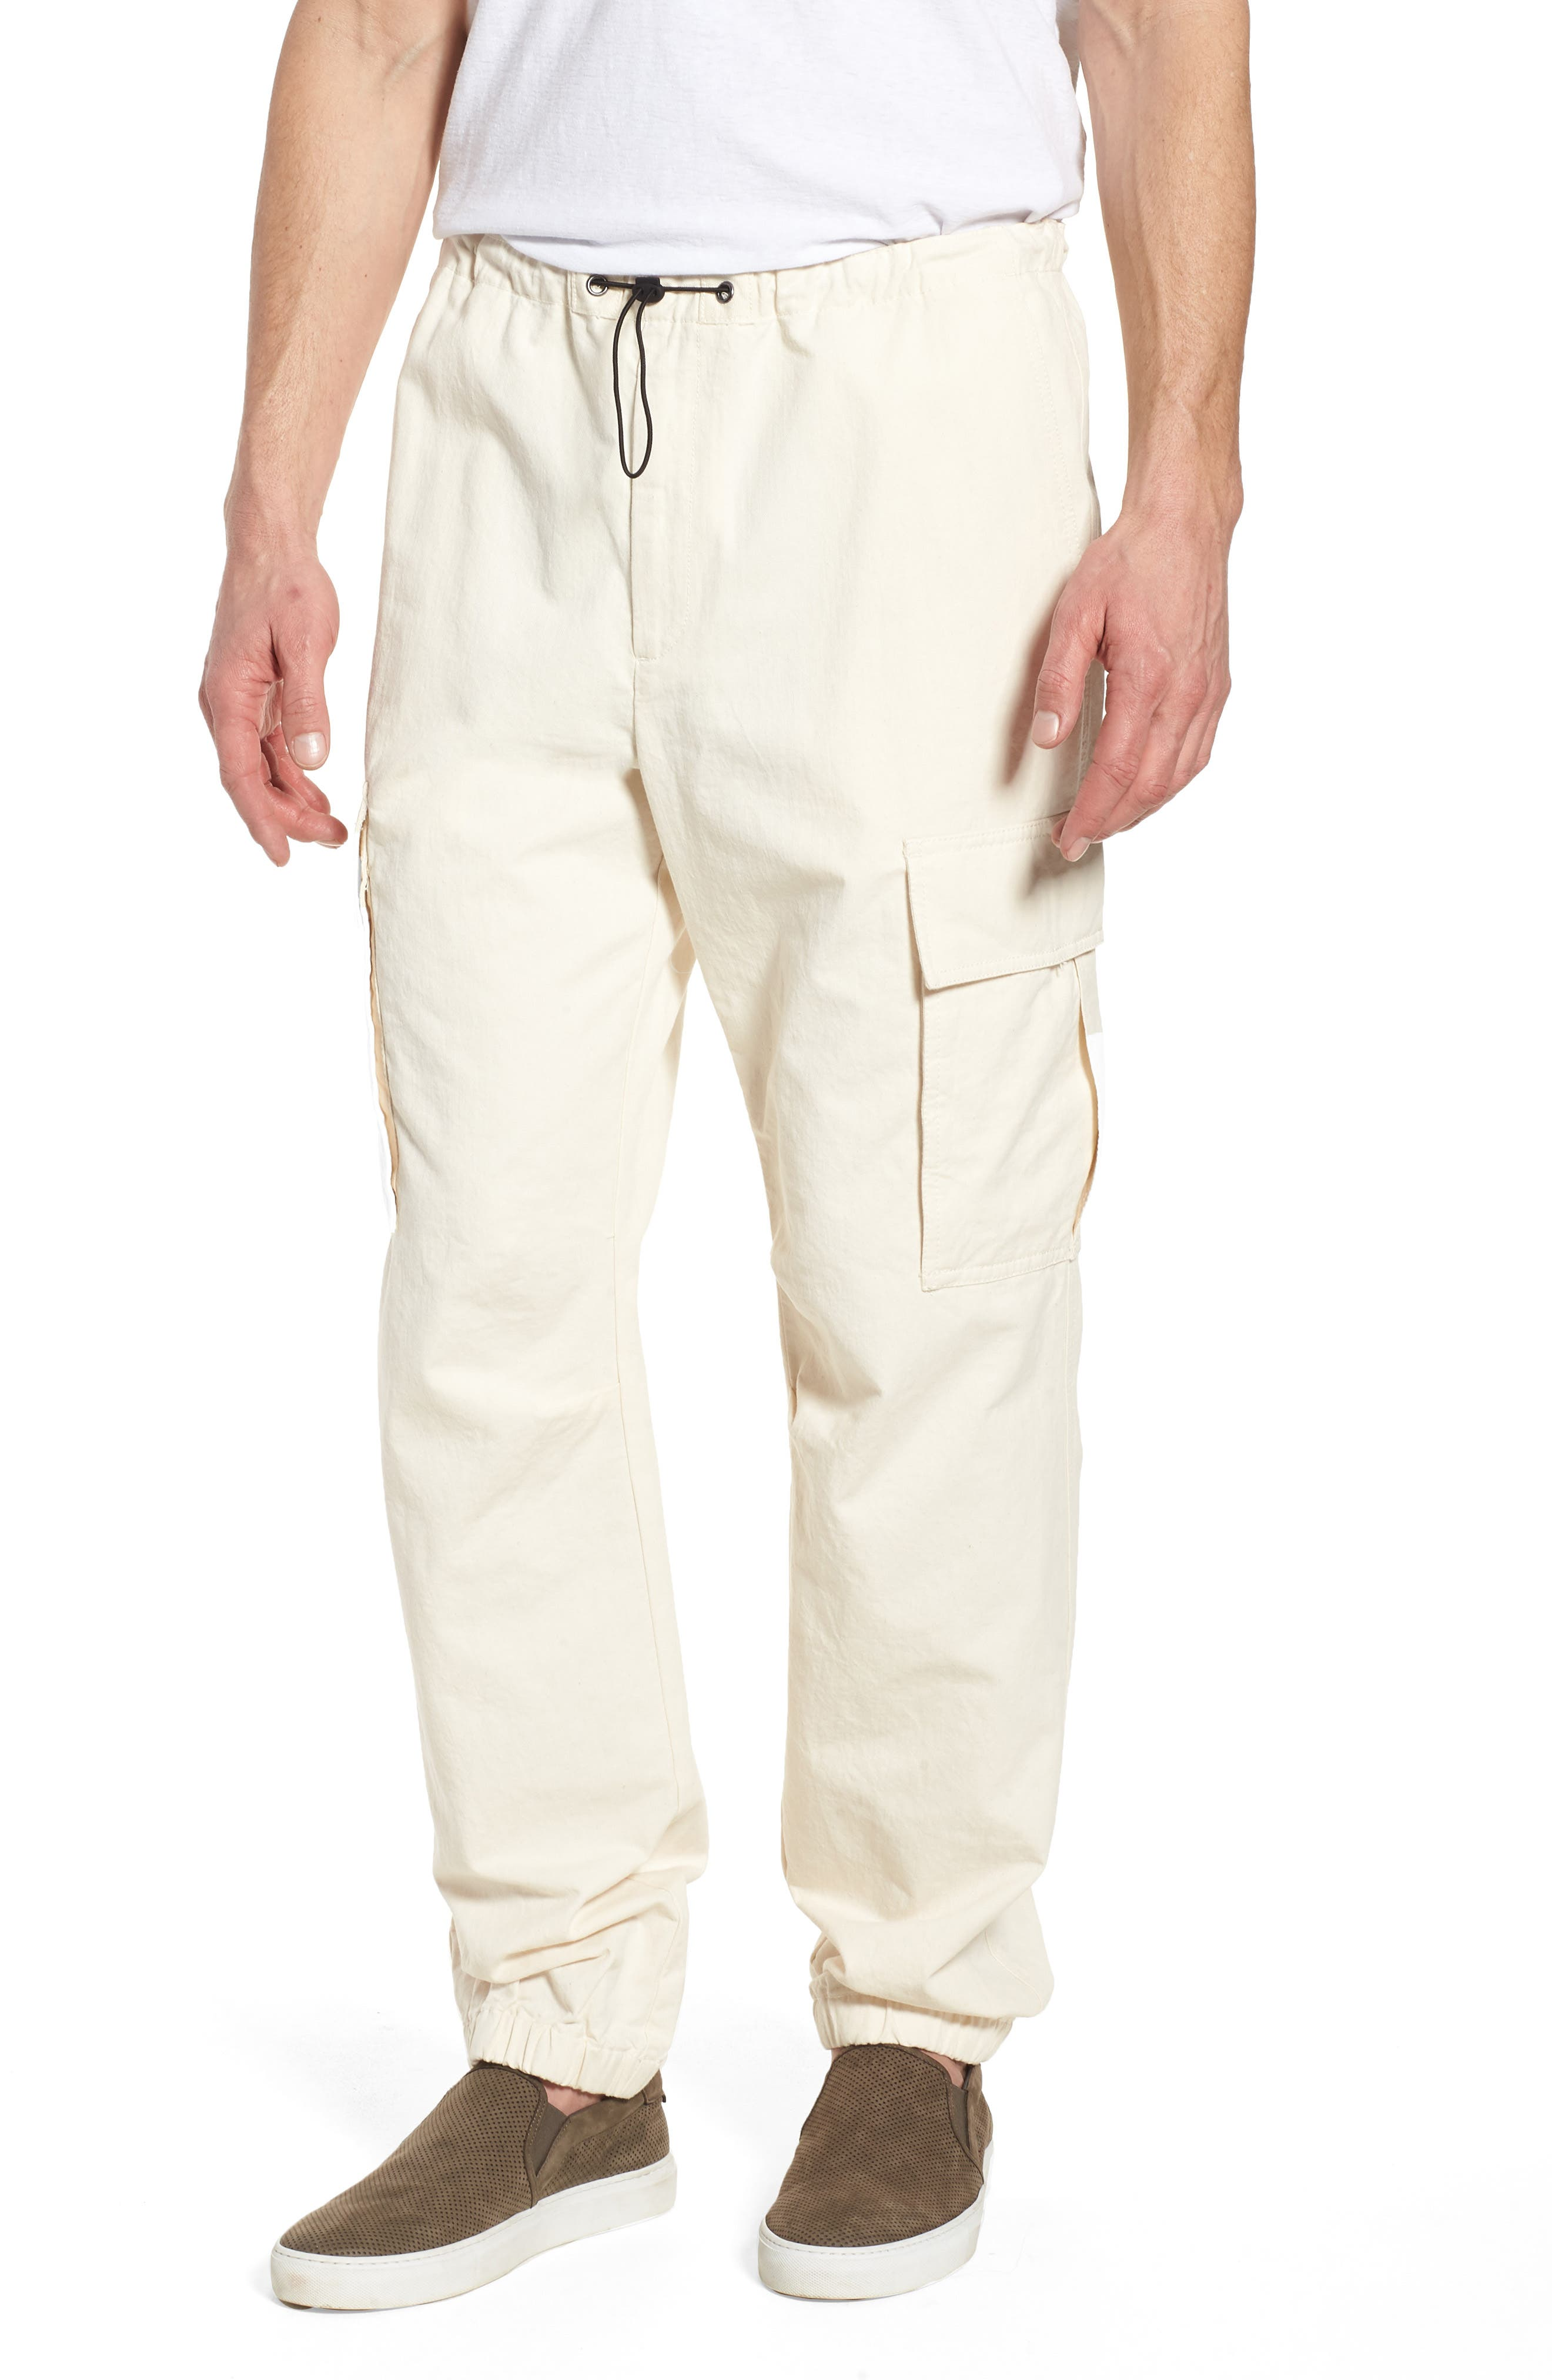 James Perse Cargo Pants, (m) - Ivory